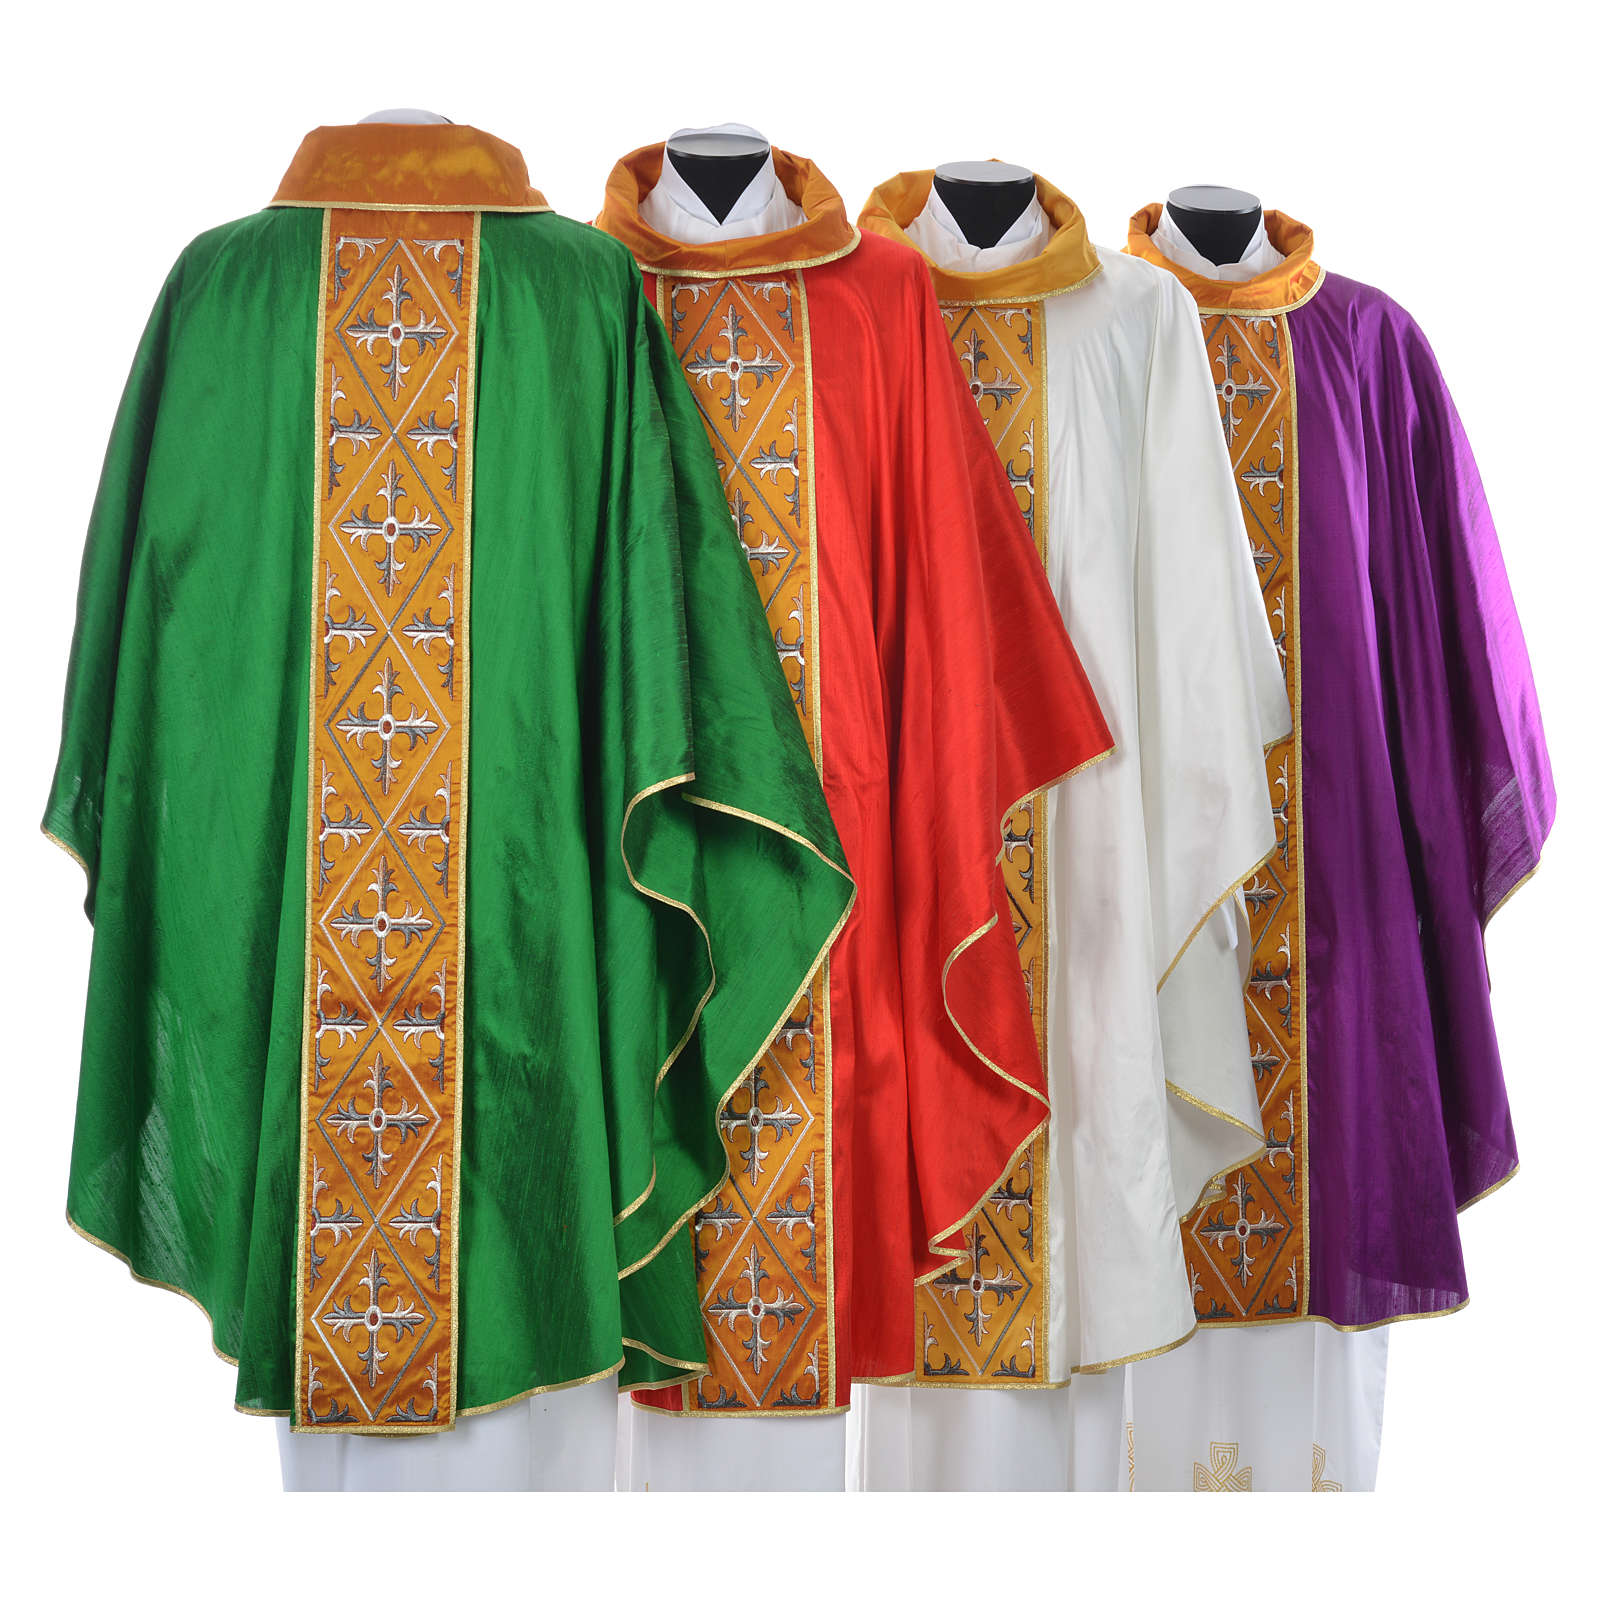 Catholic Priest Chasuble in 100% silk with cross design